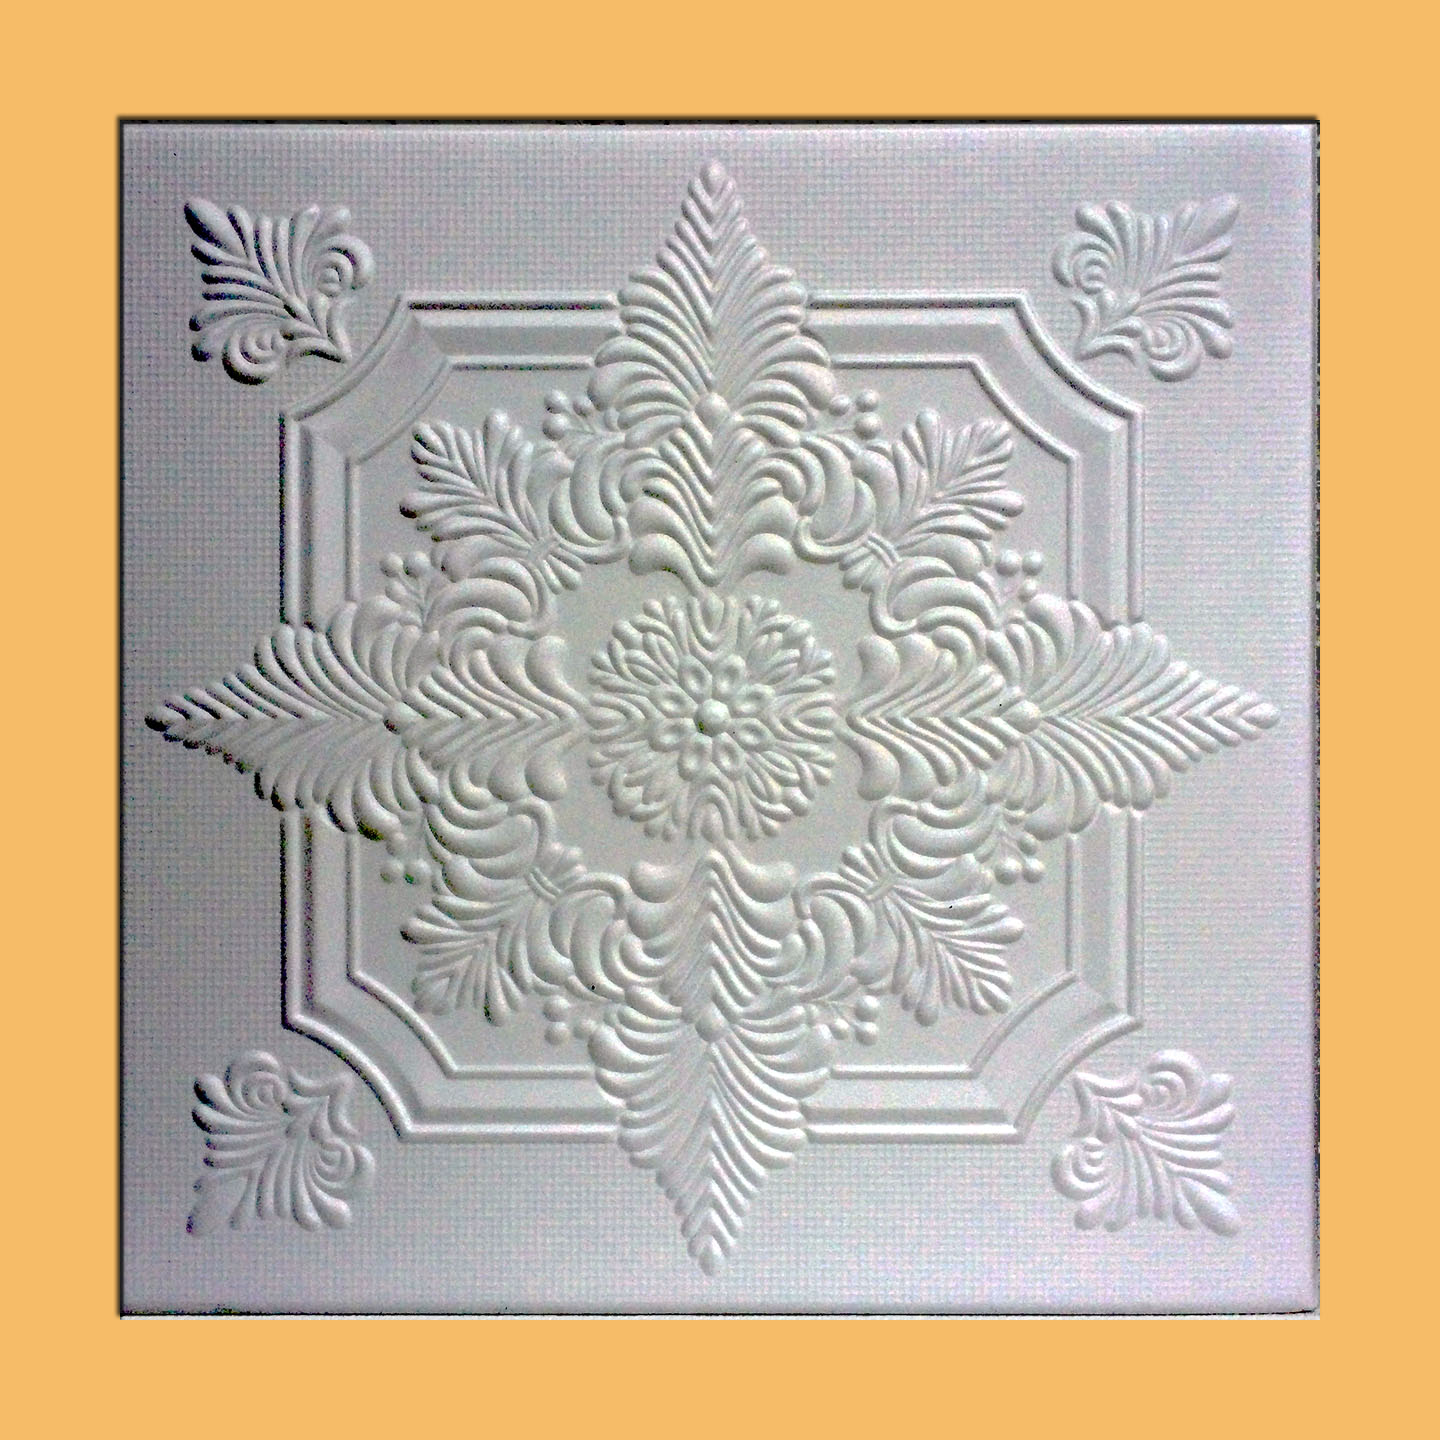 Antique ceilings decorative ceiling tiles for residential and margaretta ceiling tiles marseille ceiling tiles monacoceiling tiles novara ceiling tiles dailygadgetfo Image collections